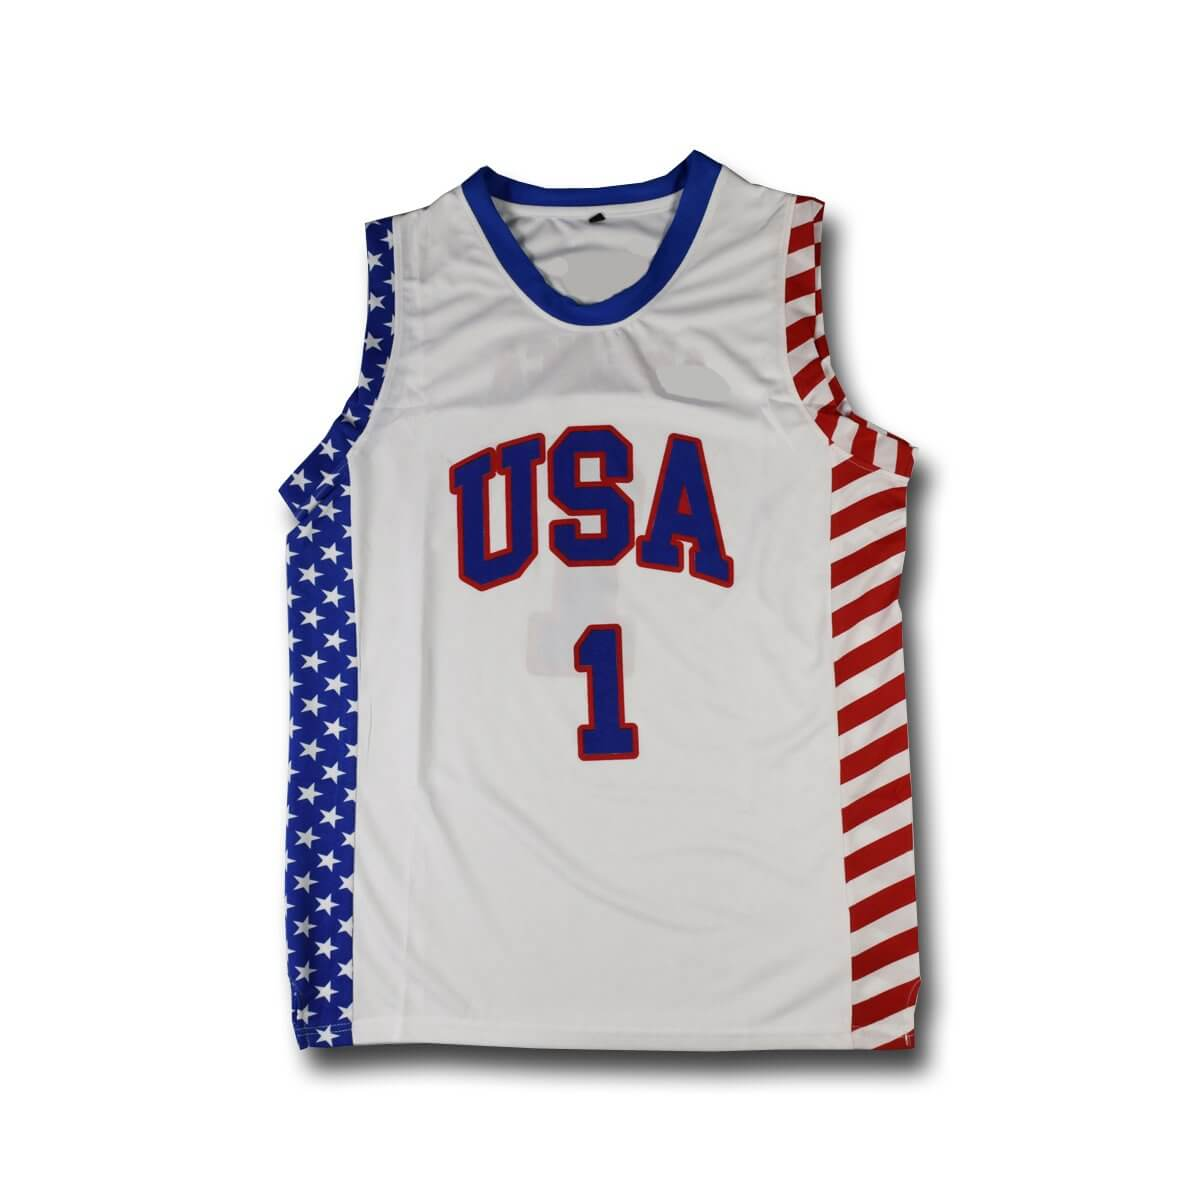 USA America Basketball Jersey